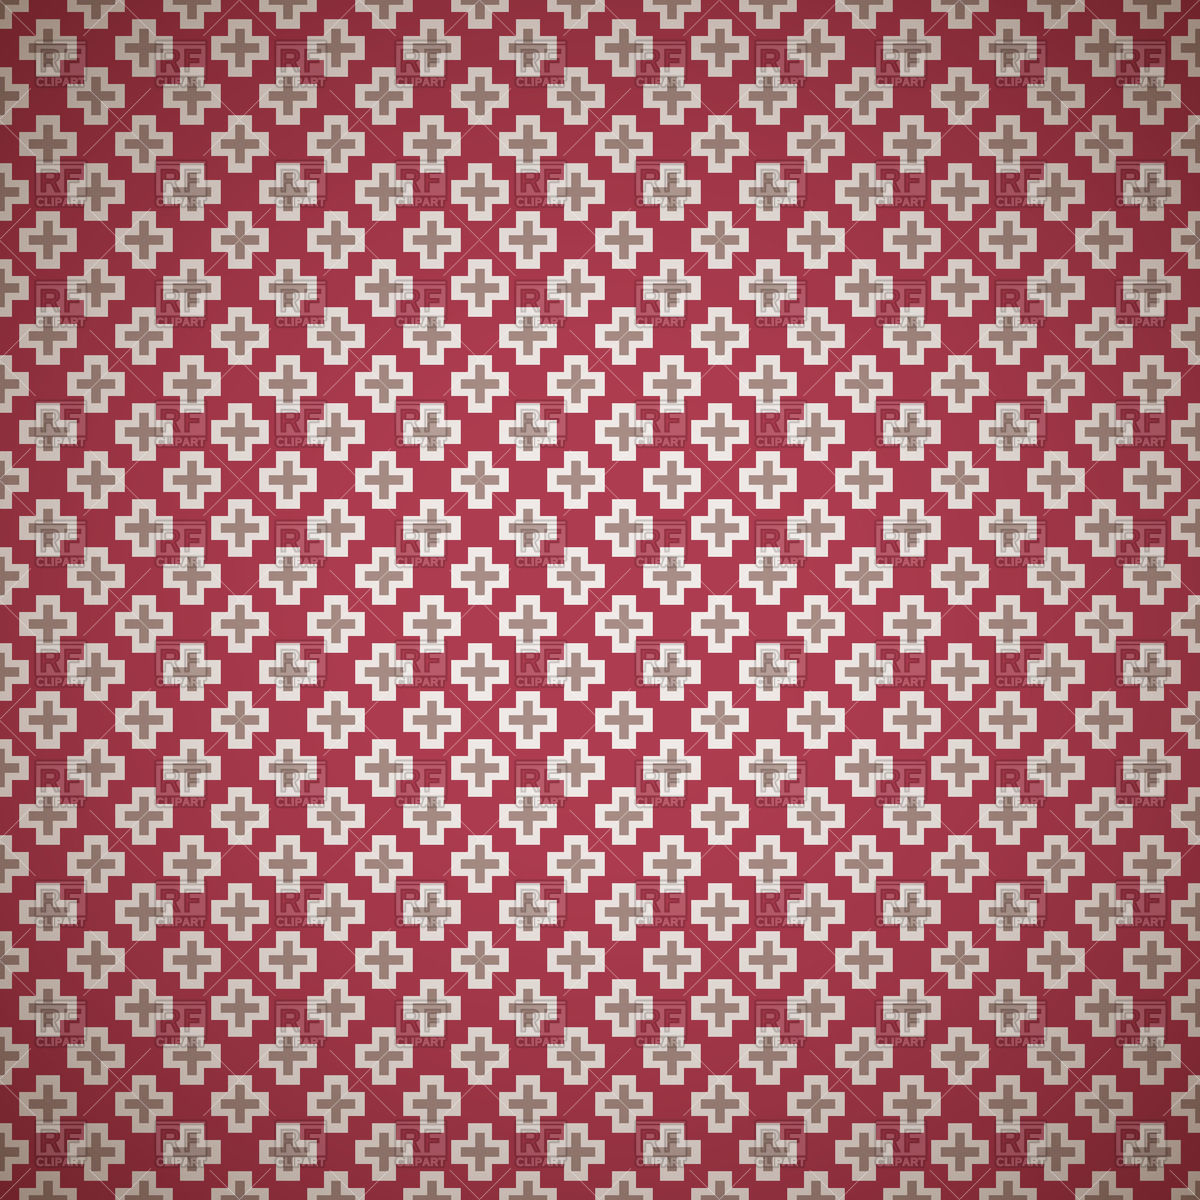 Dark red noble elegant seamless patterns of covered with crosses.